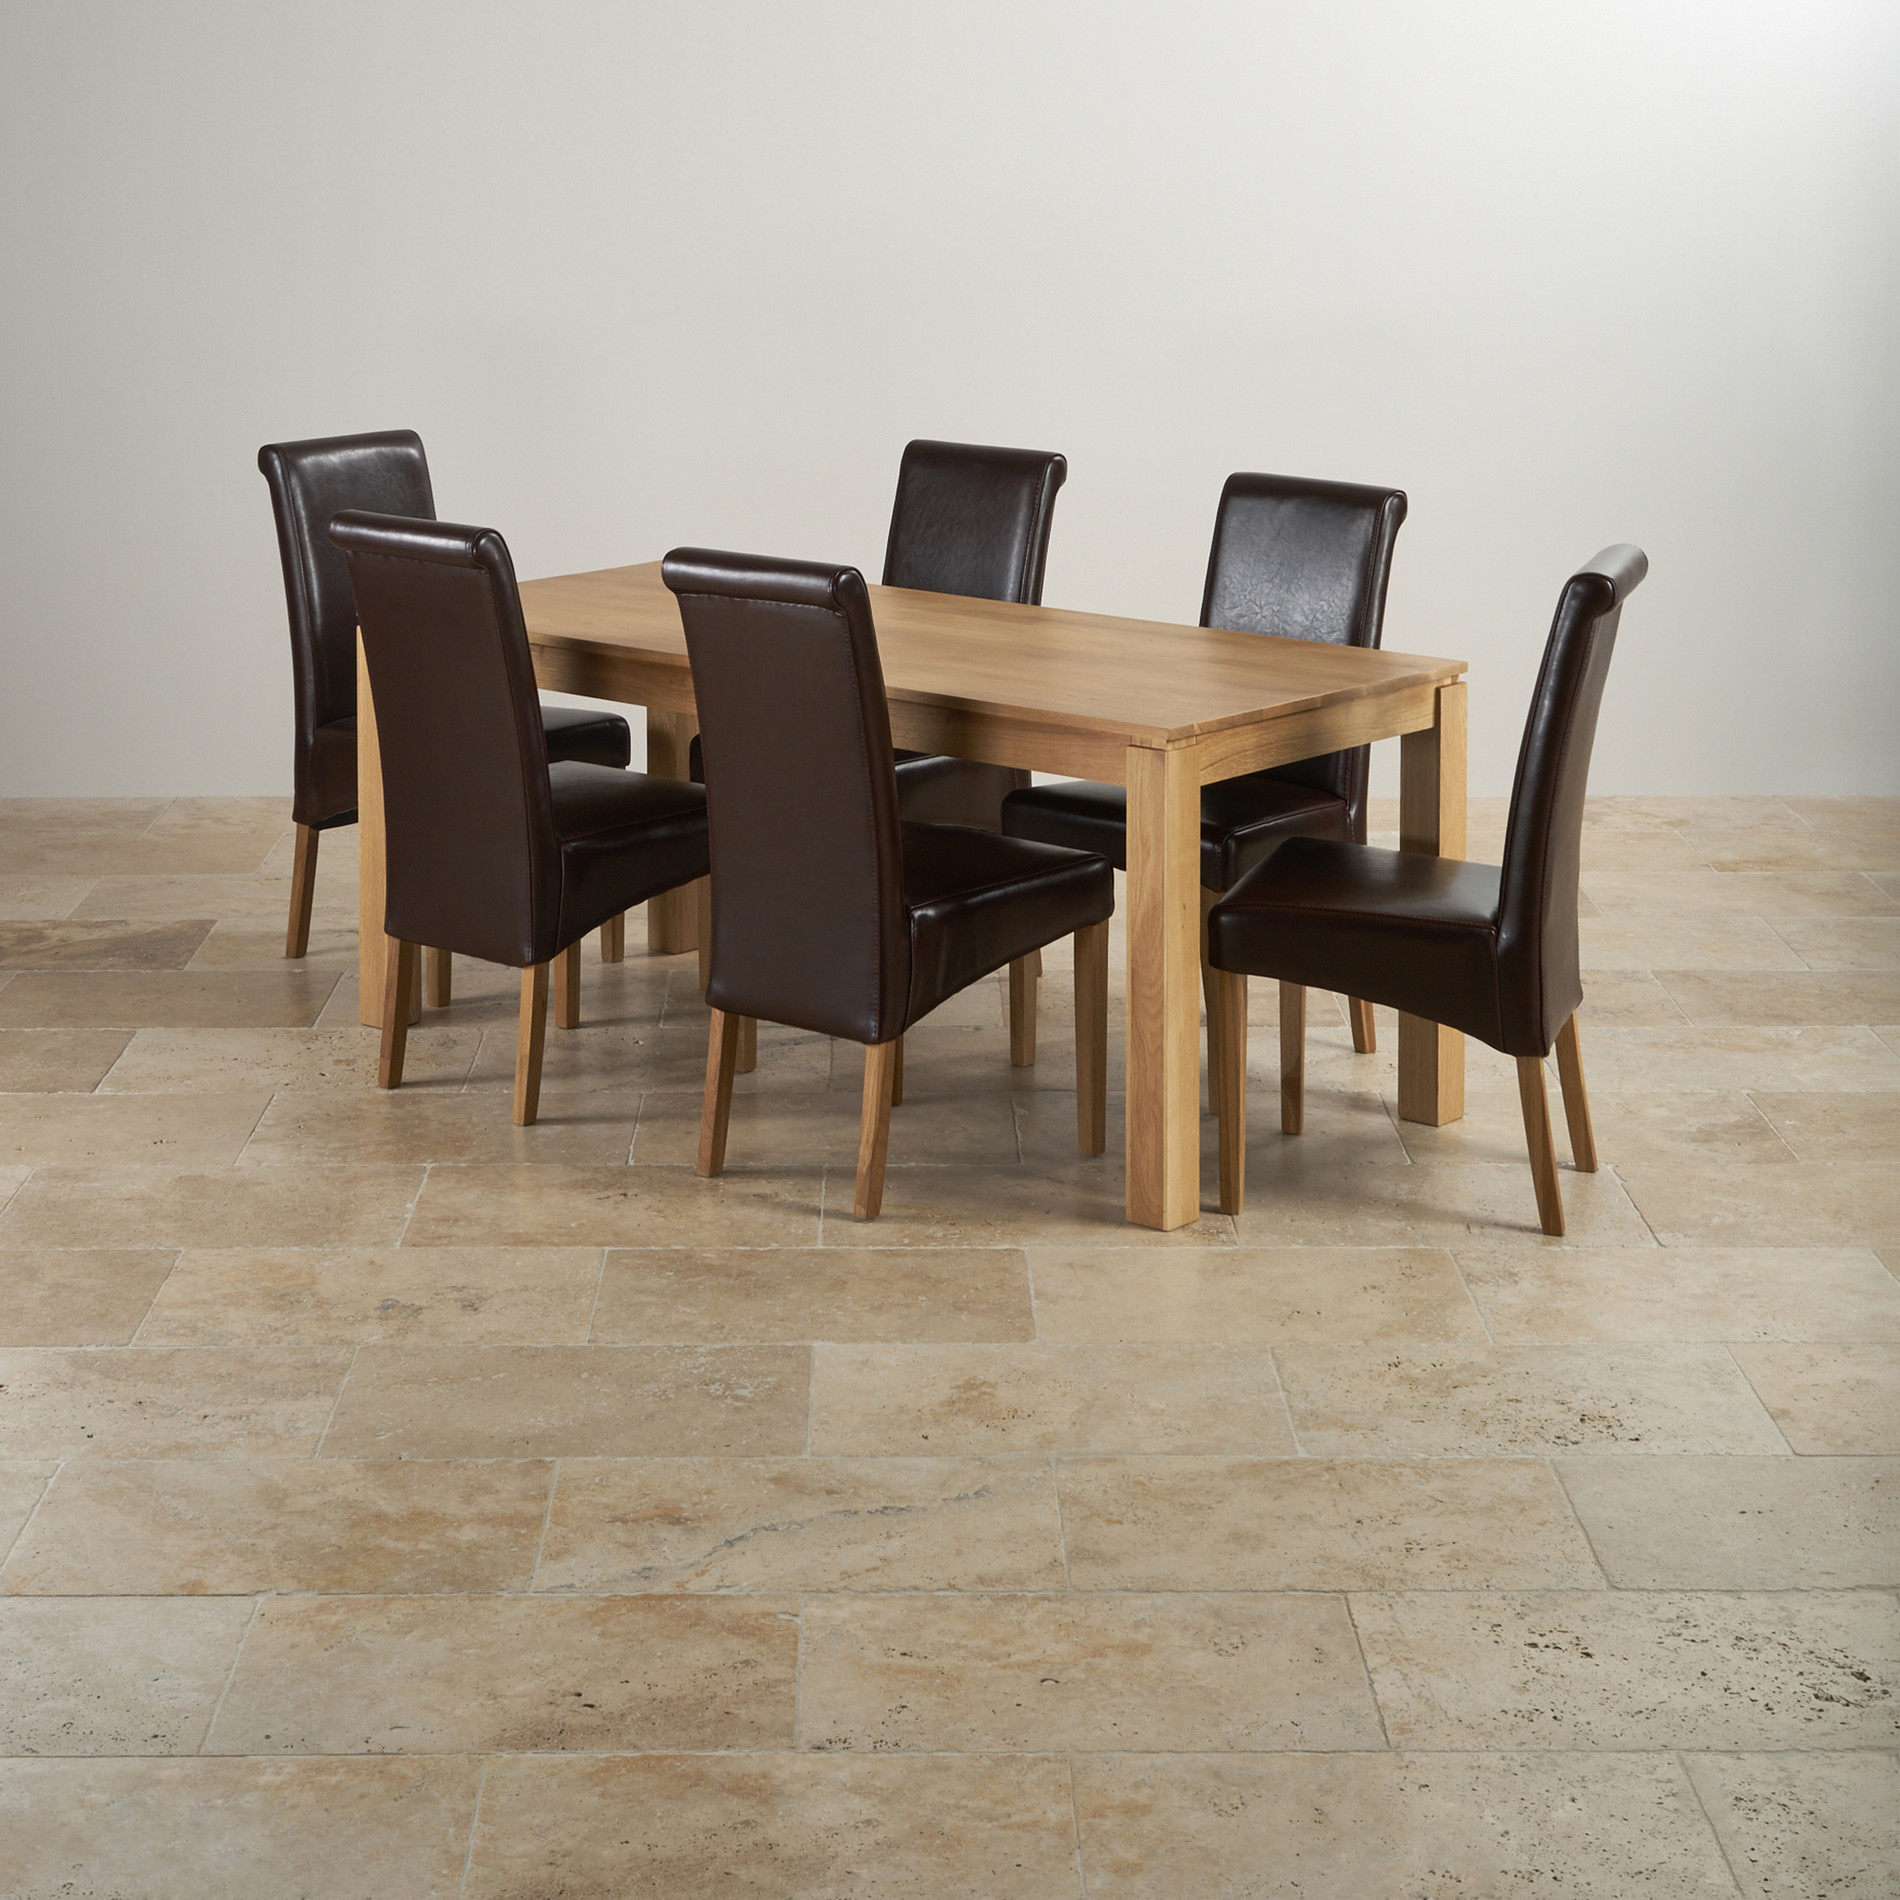 Provence Natural Solid Oak Dining Set: Galway Natural Solid Oak Dining Set